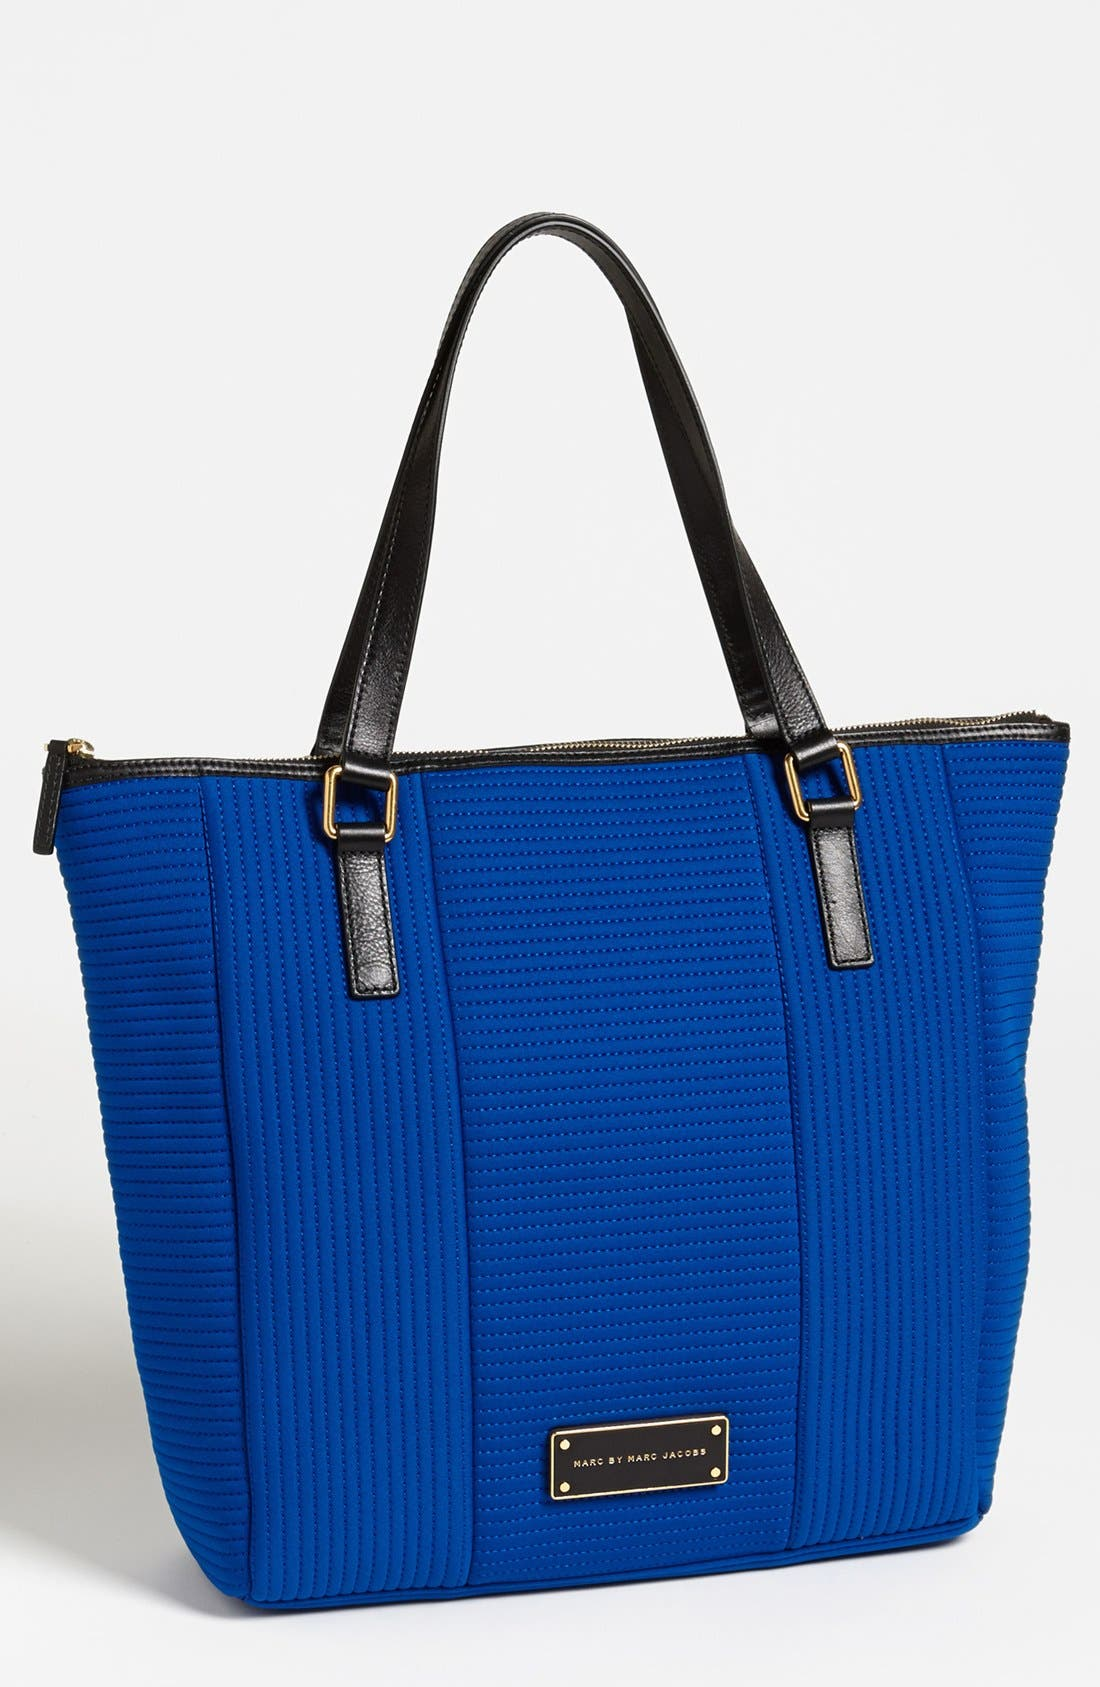 Main Image - MARC BY MARC JACOBS 'Tech Me' Tote